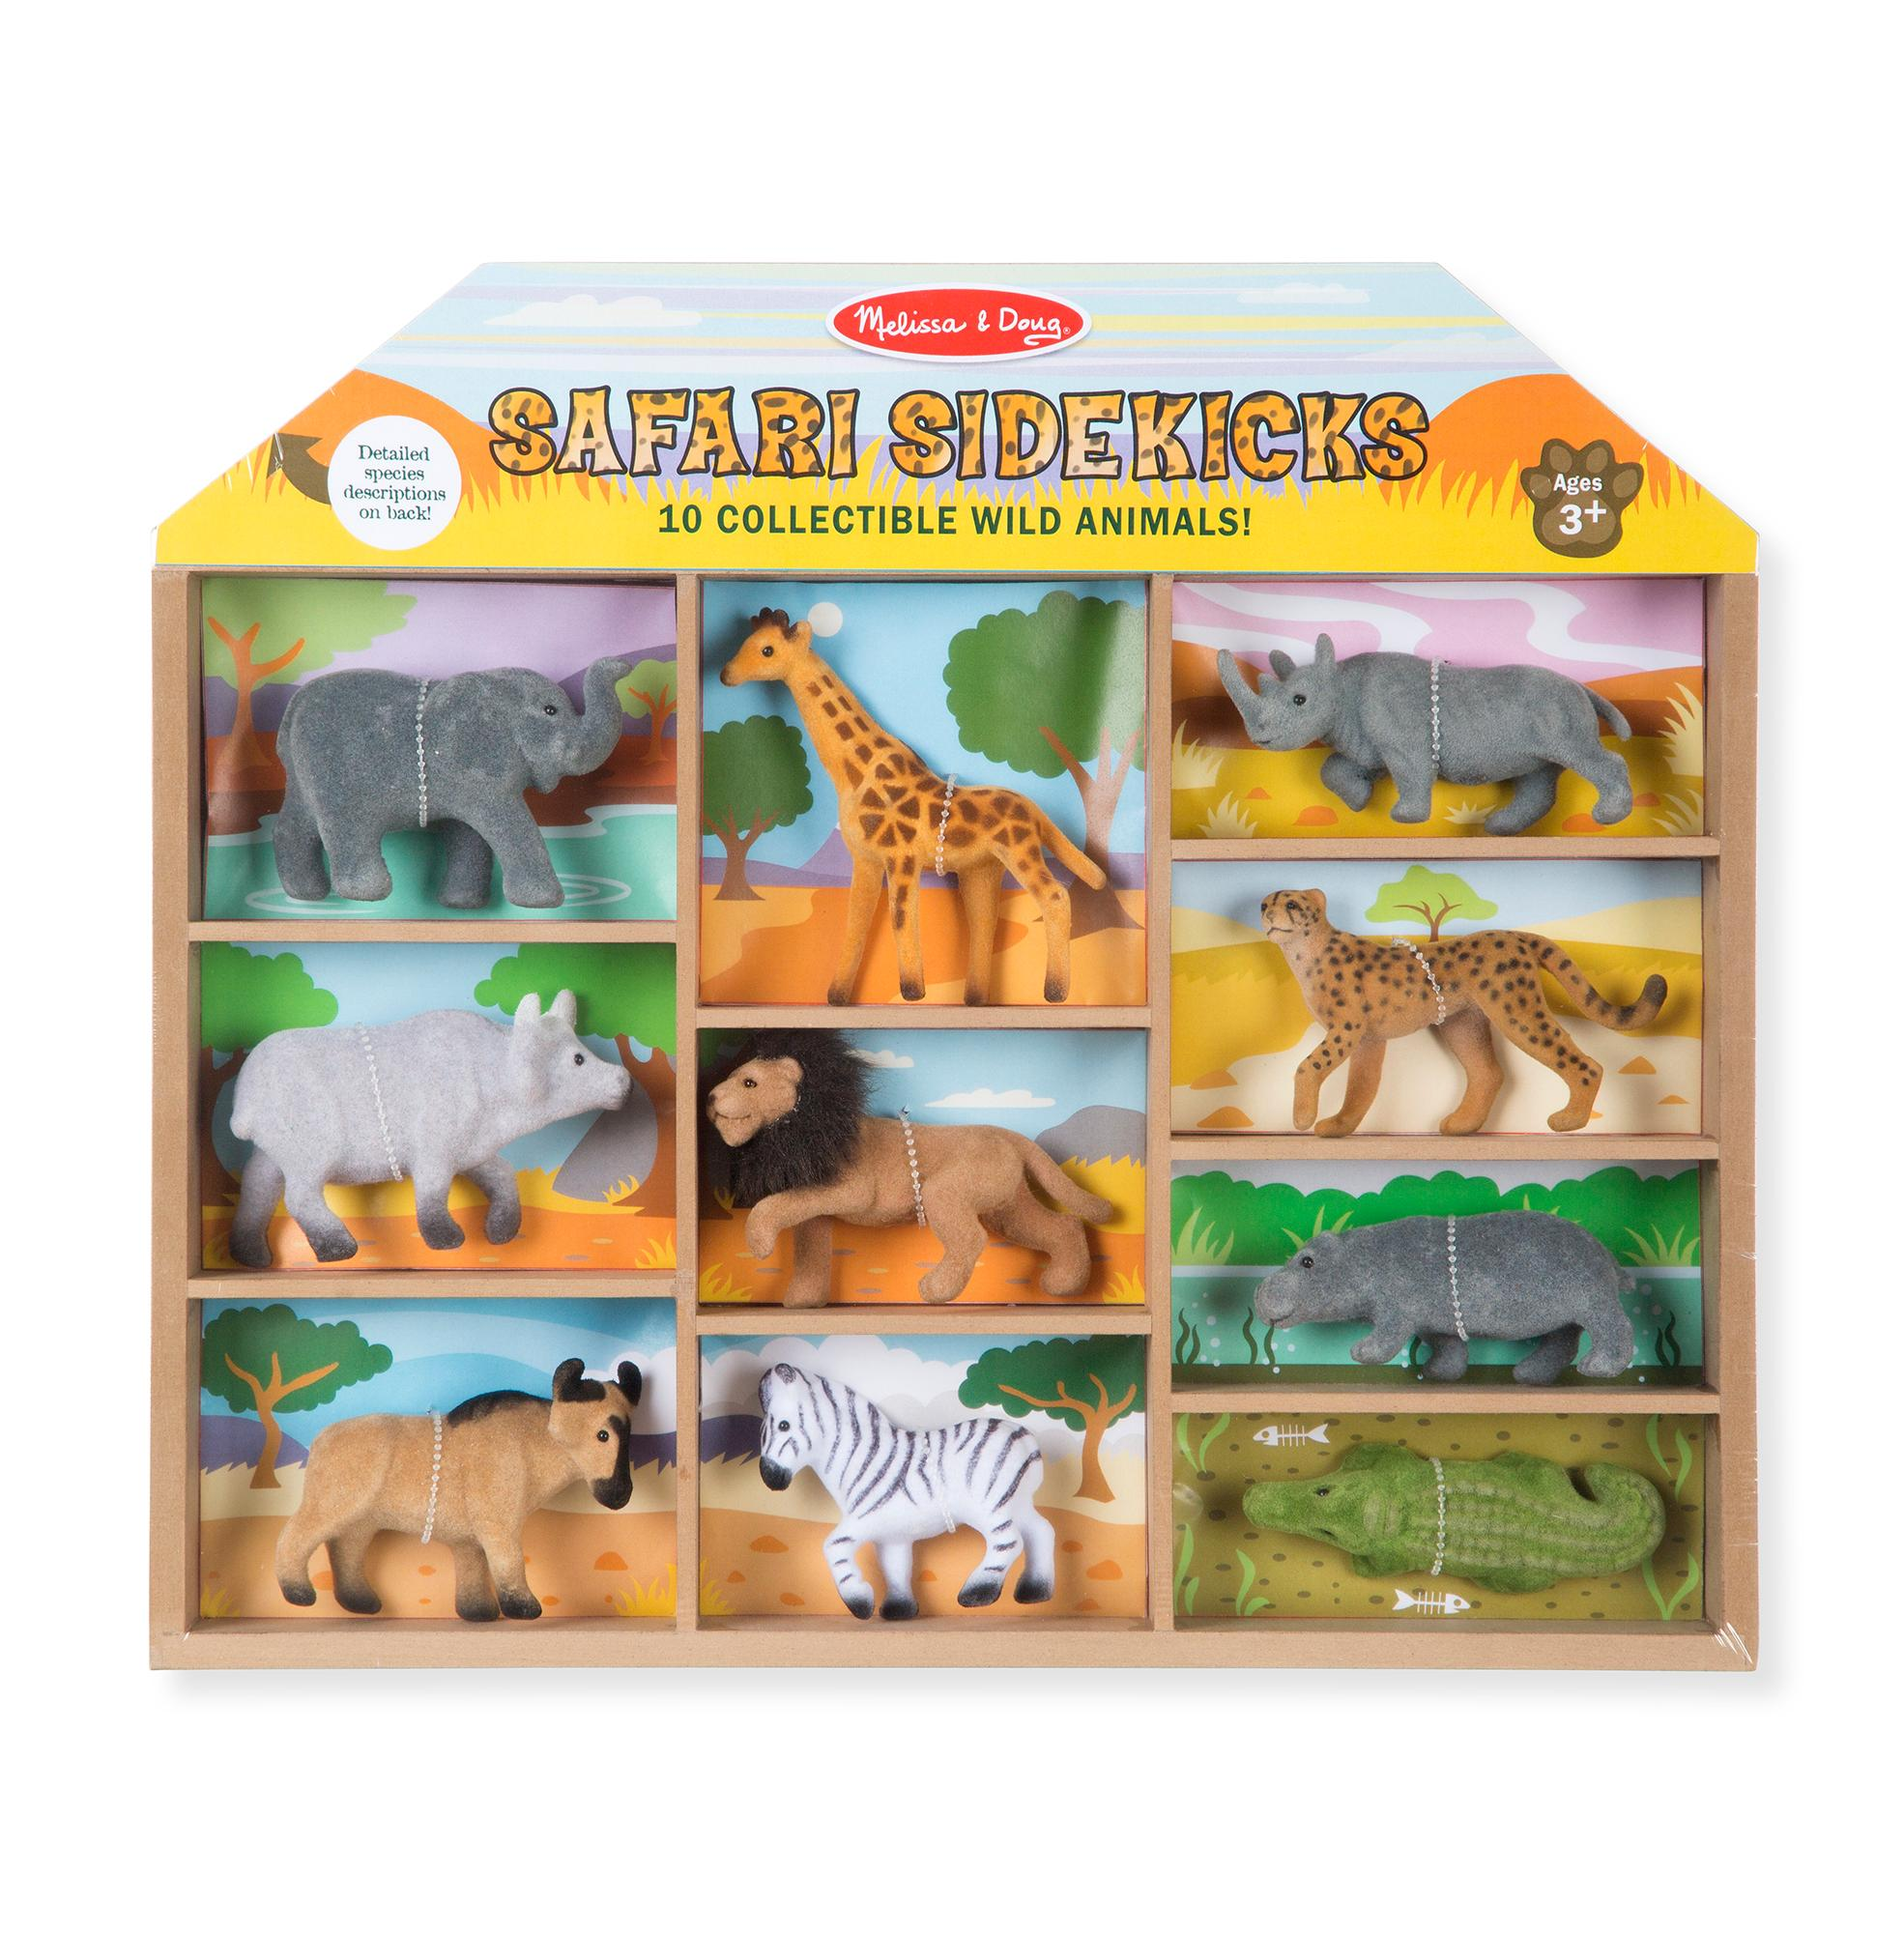 Safari Toys For Boys : Amazon melissa doug safari sidekicks classic play